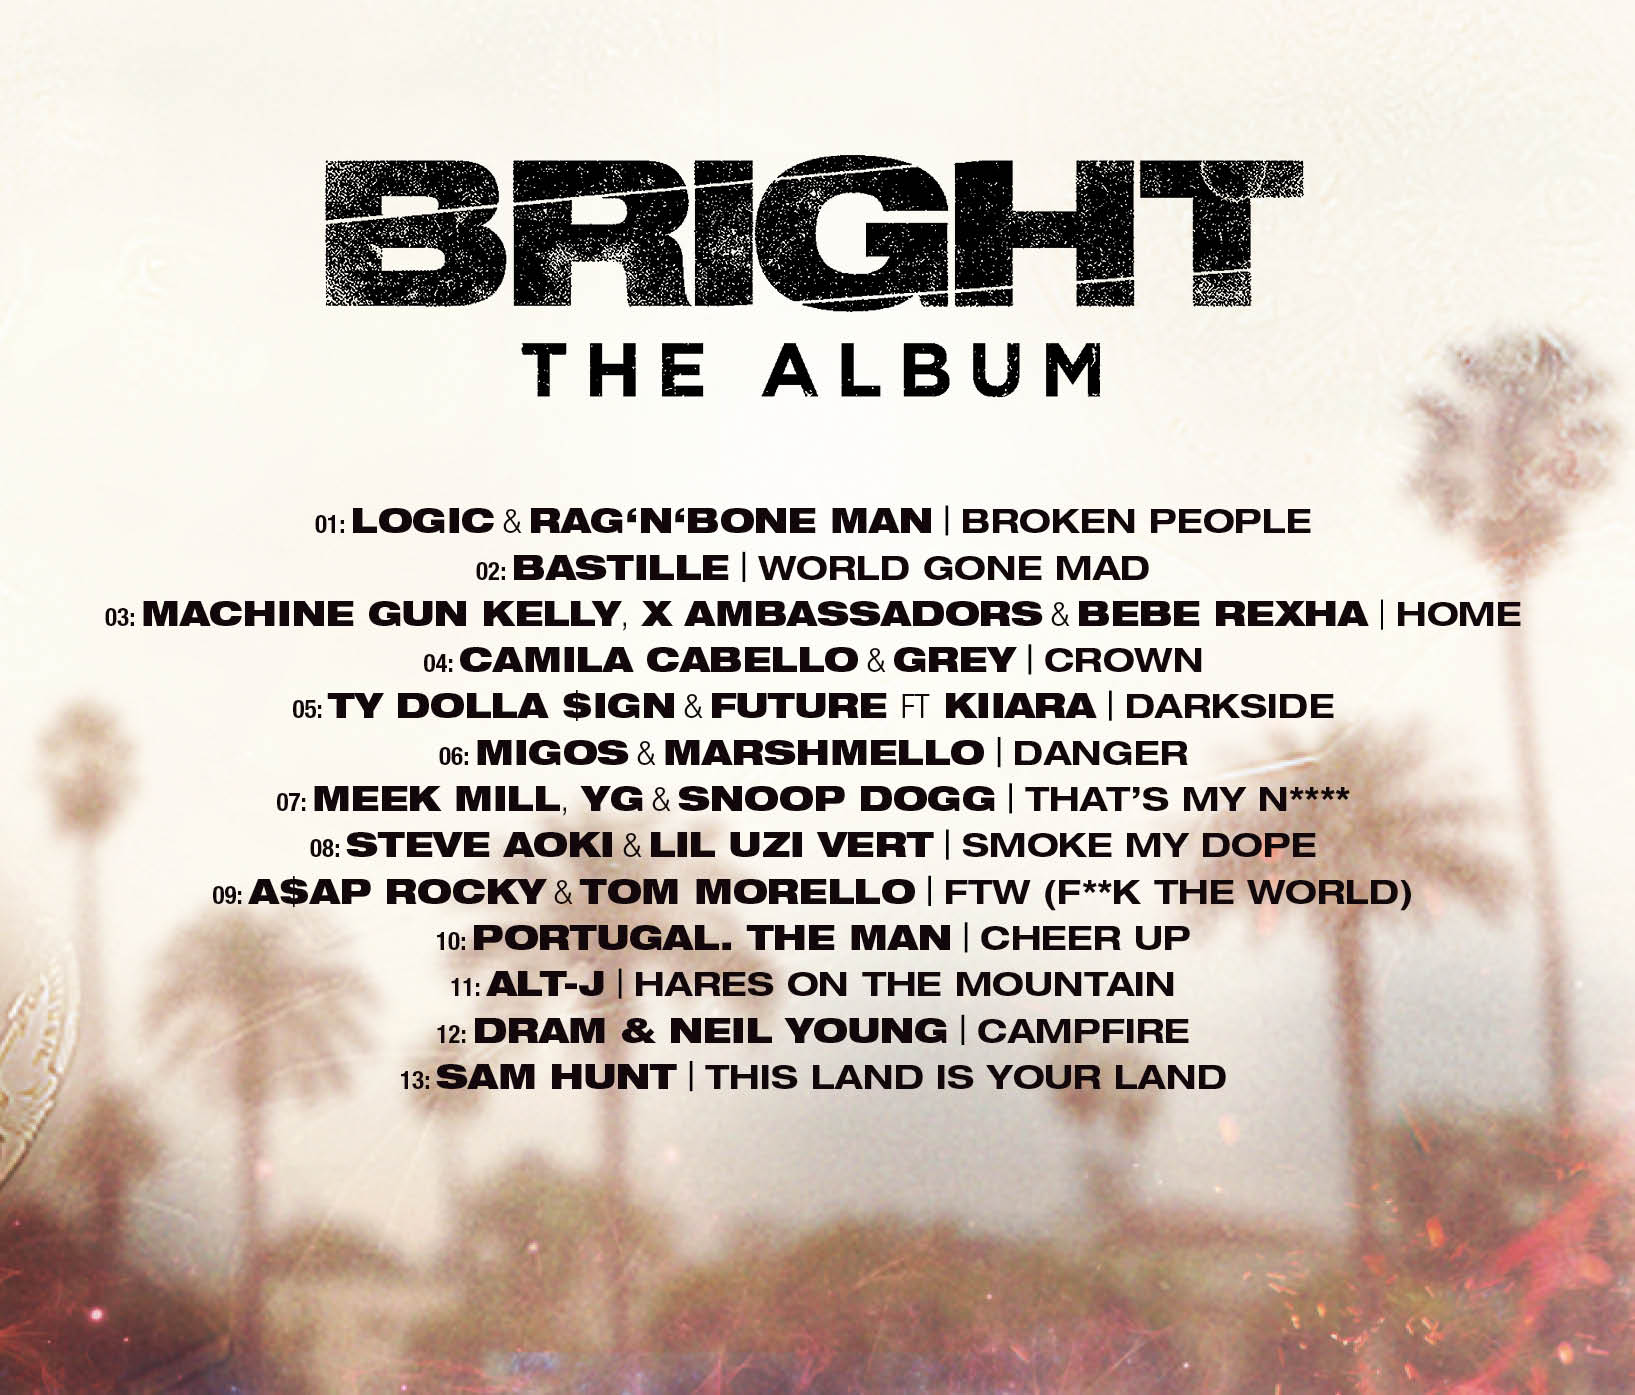 bright album tracklist Neil Young and DRAMs collaborative song exists, to be released on soundtrack to Will Smiths Bright